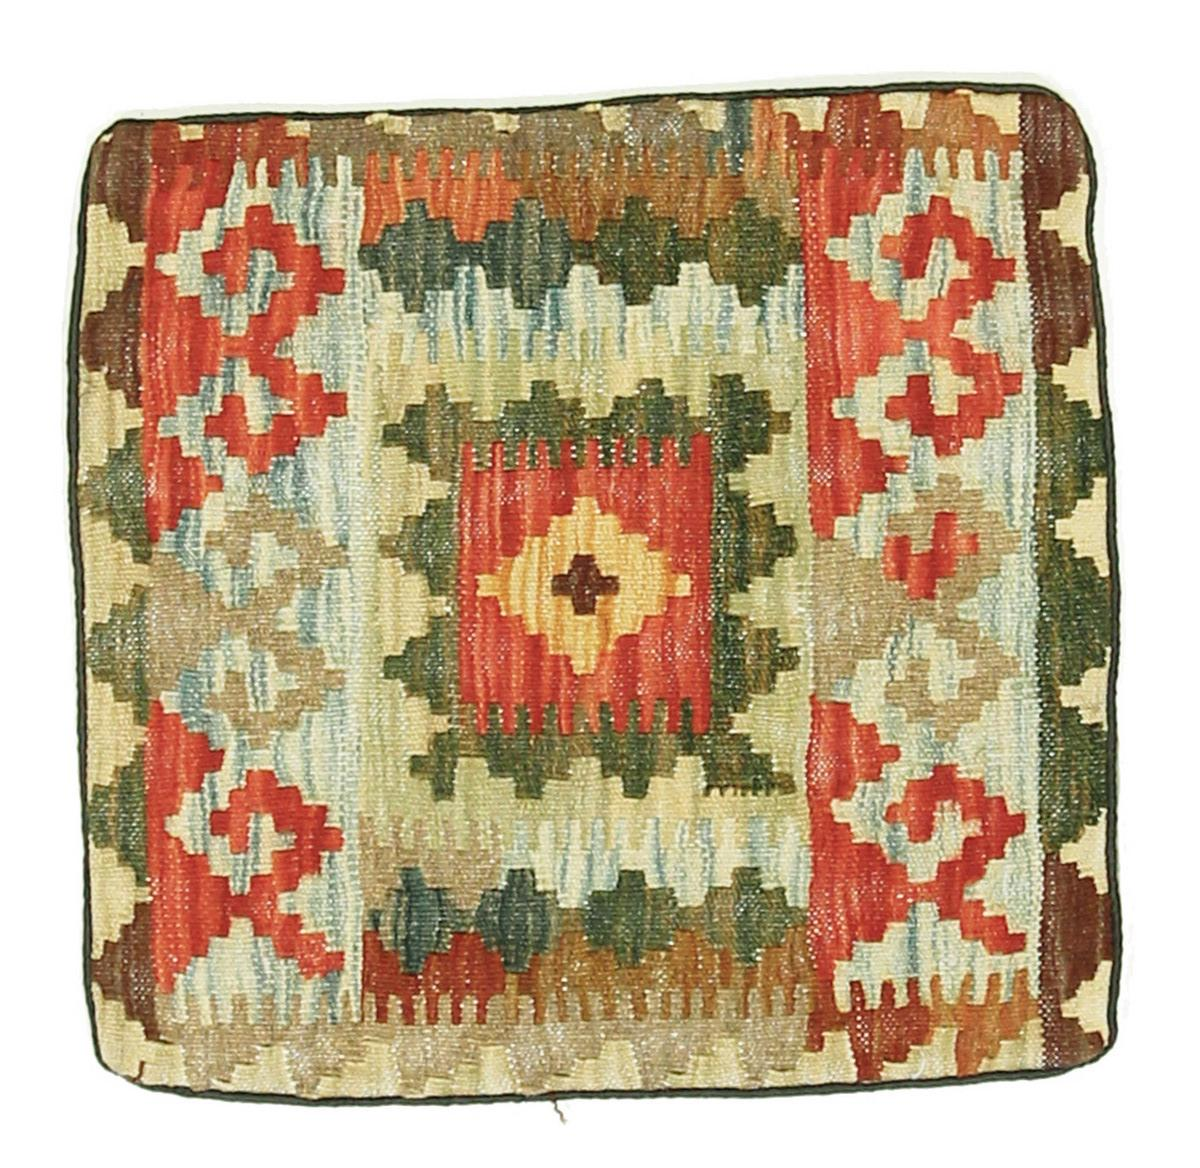 Etro Kissen Kissen 45 X 45 Great Spicy Kissen Dylan X Cm Llrosa Multi With